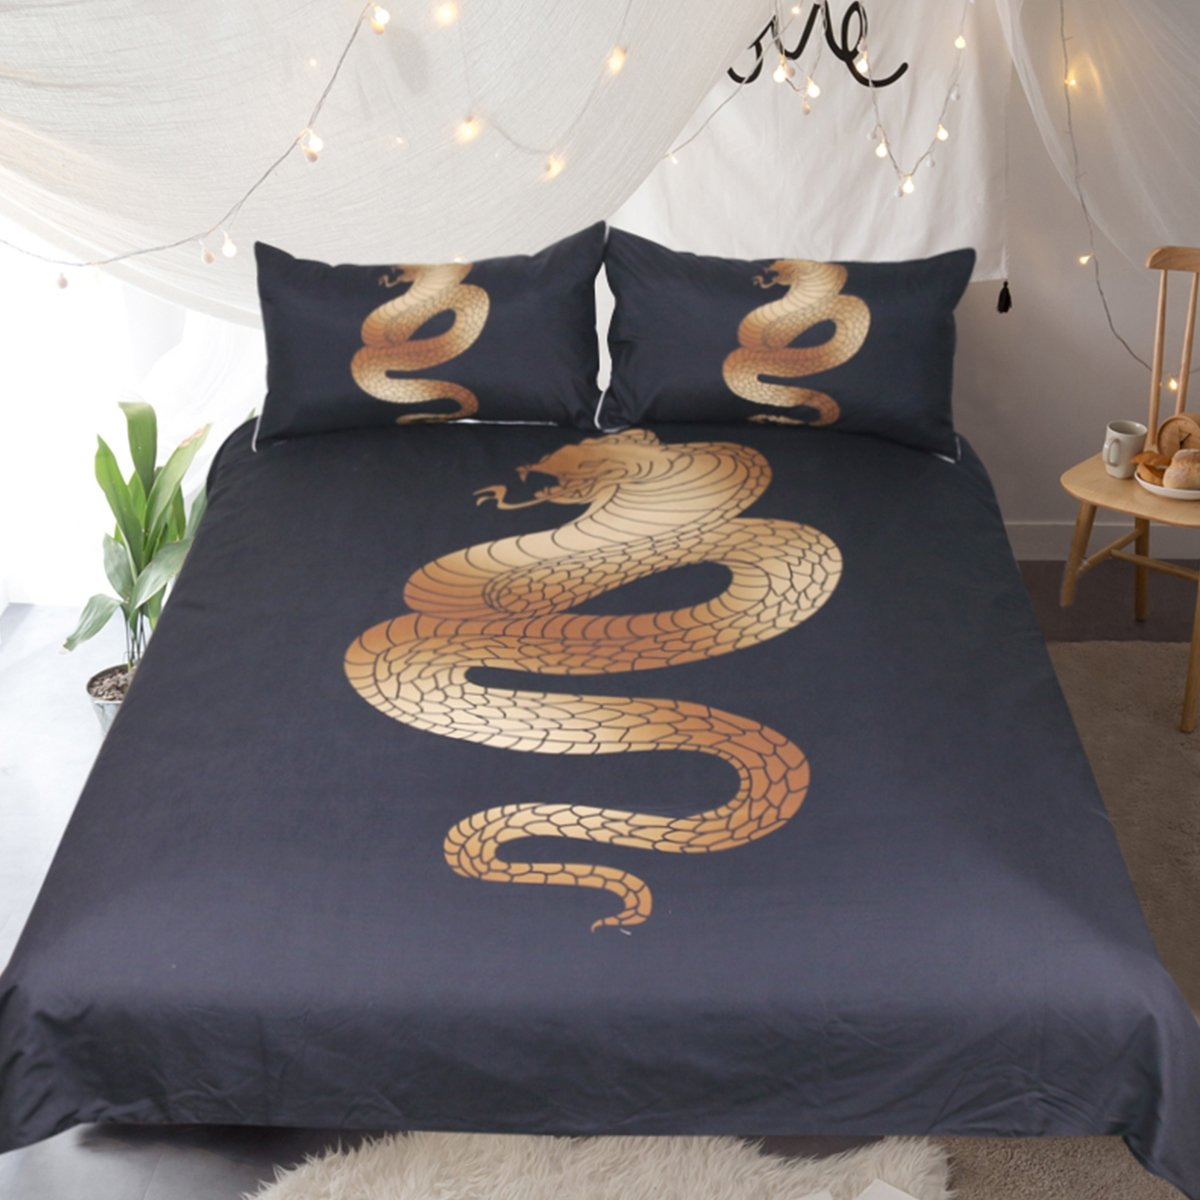 Sleepwish Snake Bedding Golden Duvet Cover for Men Cool Animal Bed Spread Black and Gold Bed Covers (Snake, Queen)